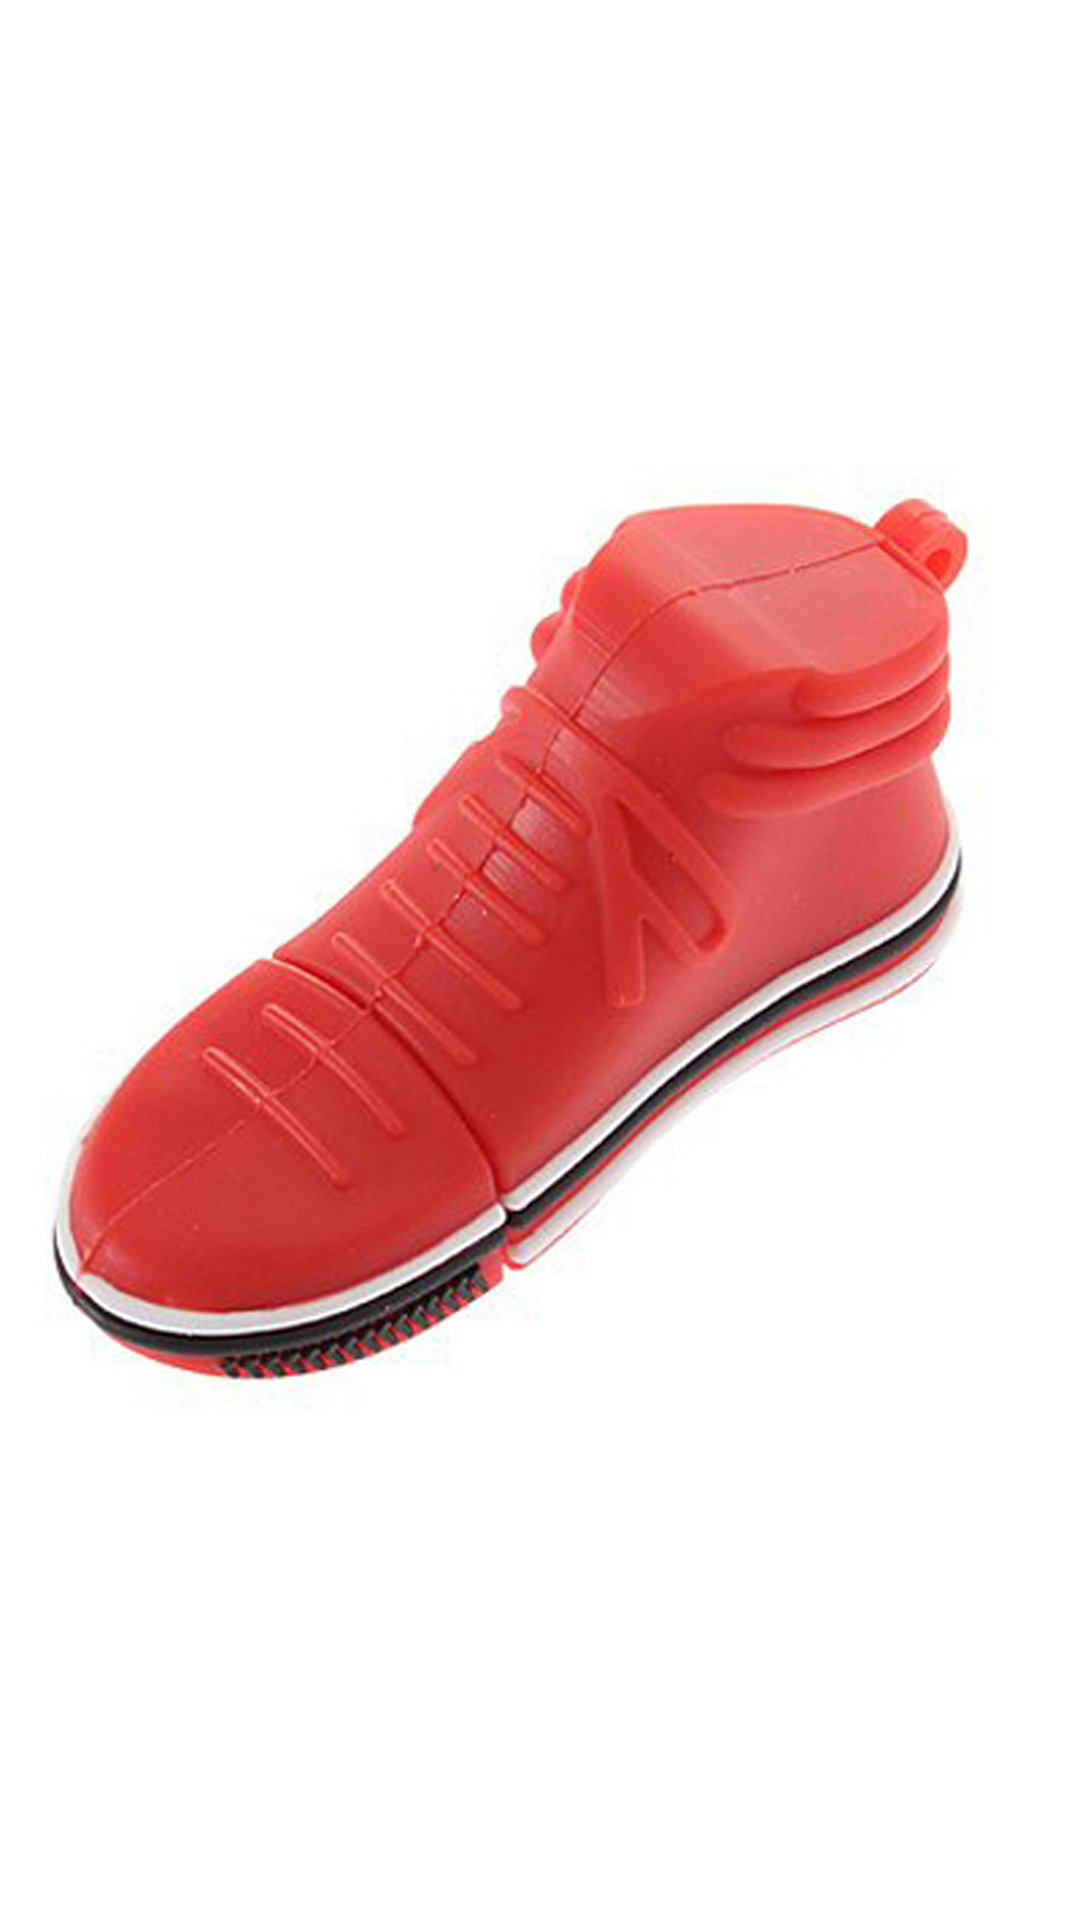 The Fappy Store Shoe USB 2.0 8 GB Designer Pen Drive (Red)